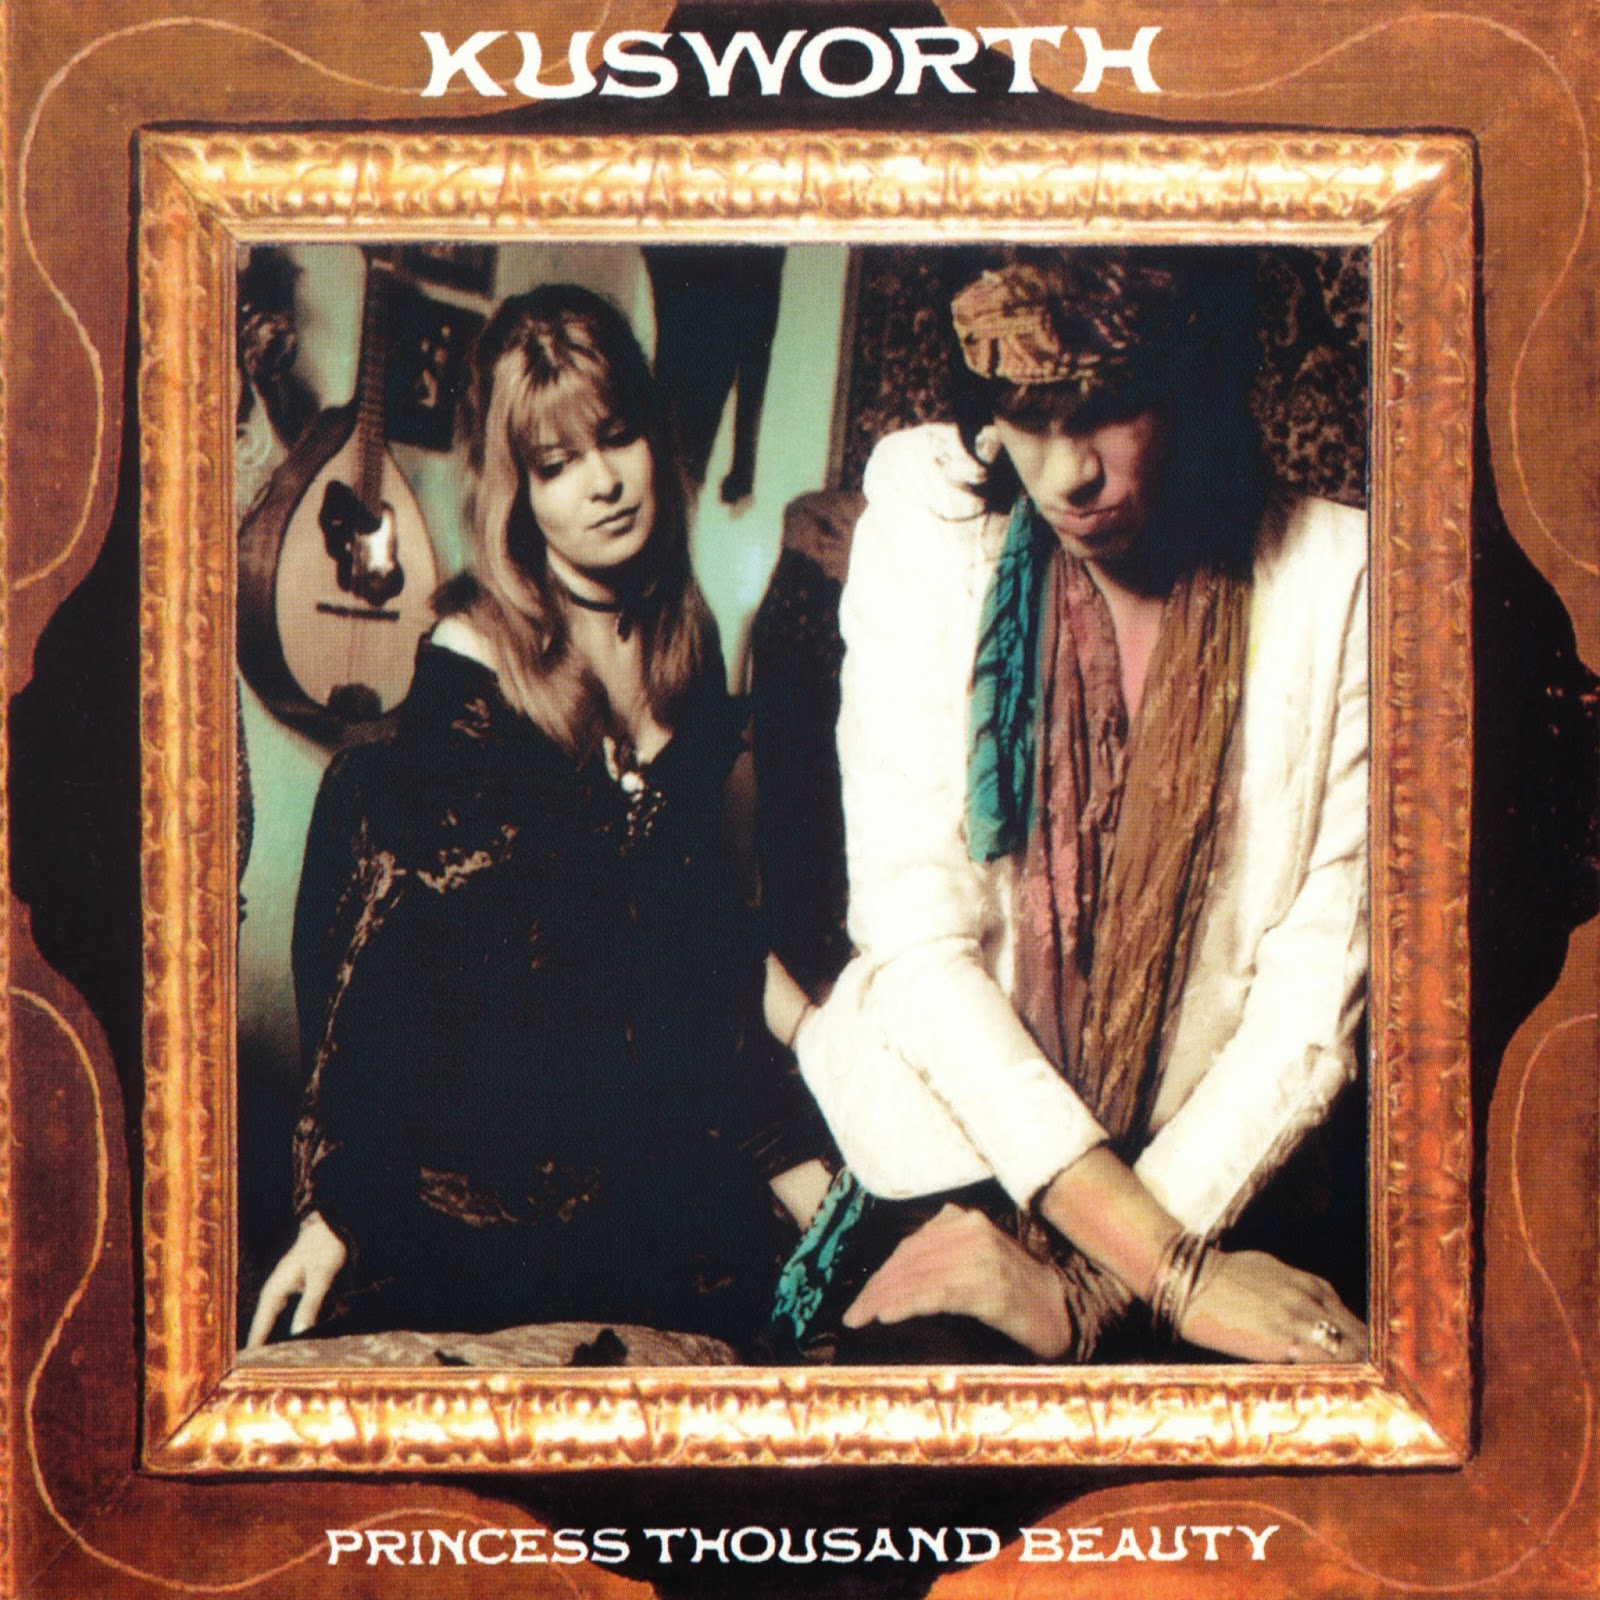 DAVE KUSWORTH & LOS TUPPER nuevo disco en Septiembre. Dave+Kusworth+-+Princess+Of+Beauty+front